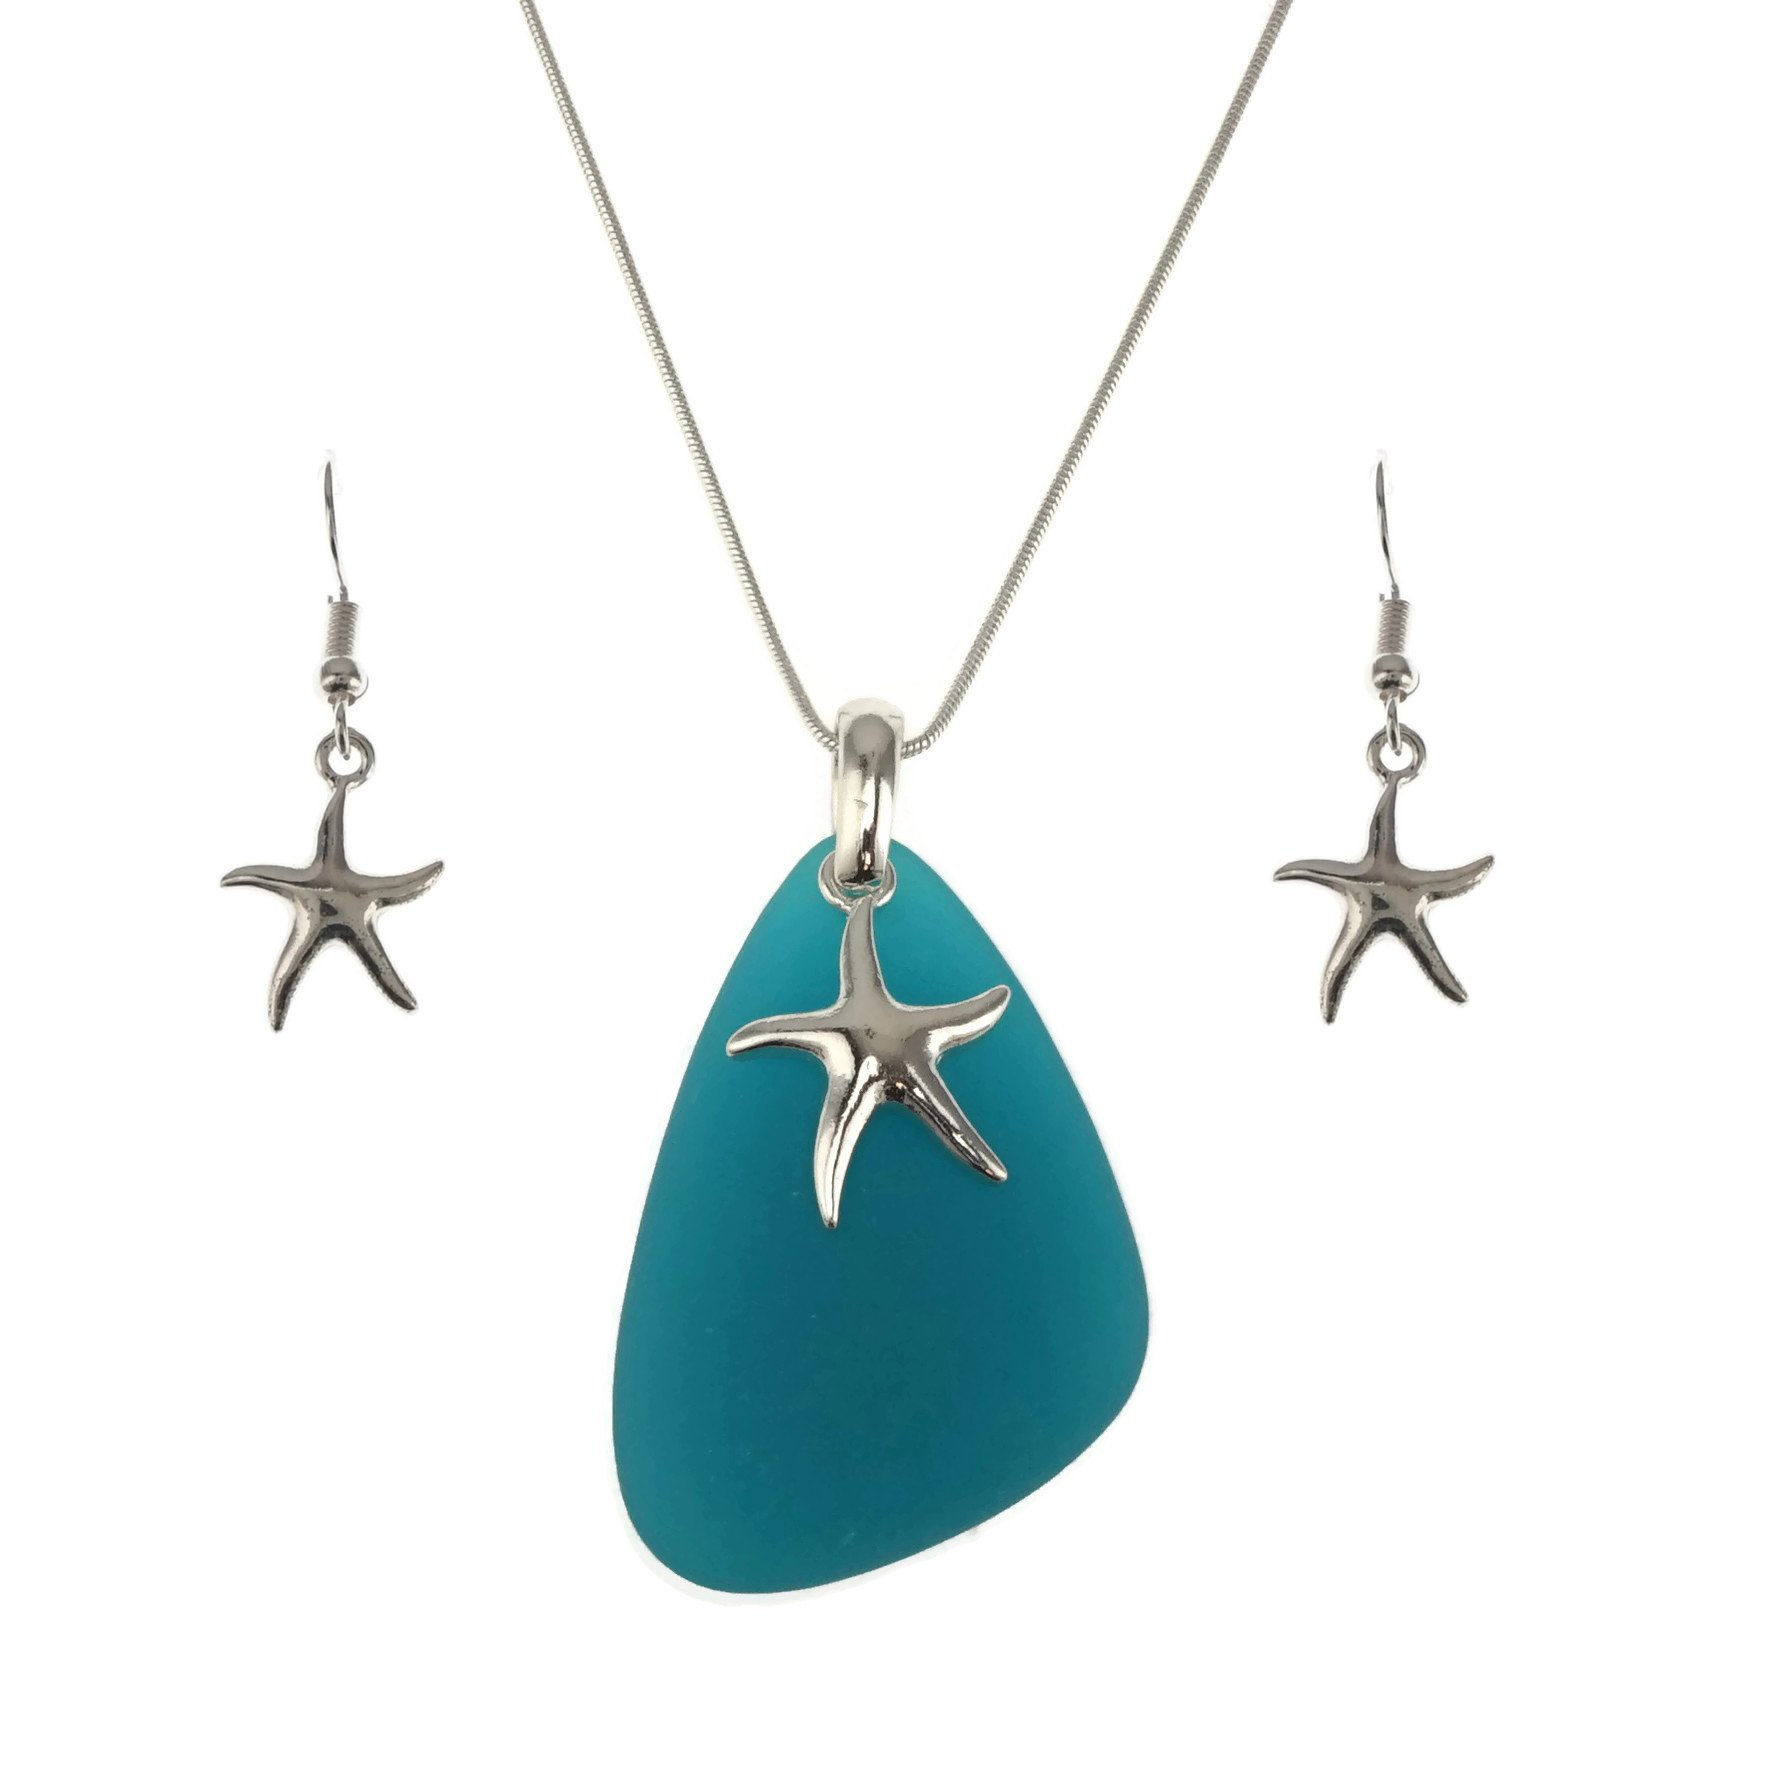 Jucicle Blue Sea Glass Pendant Long Necklace 27'' and Earrings Set (Starfish - Sea Blue)